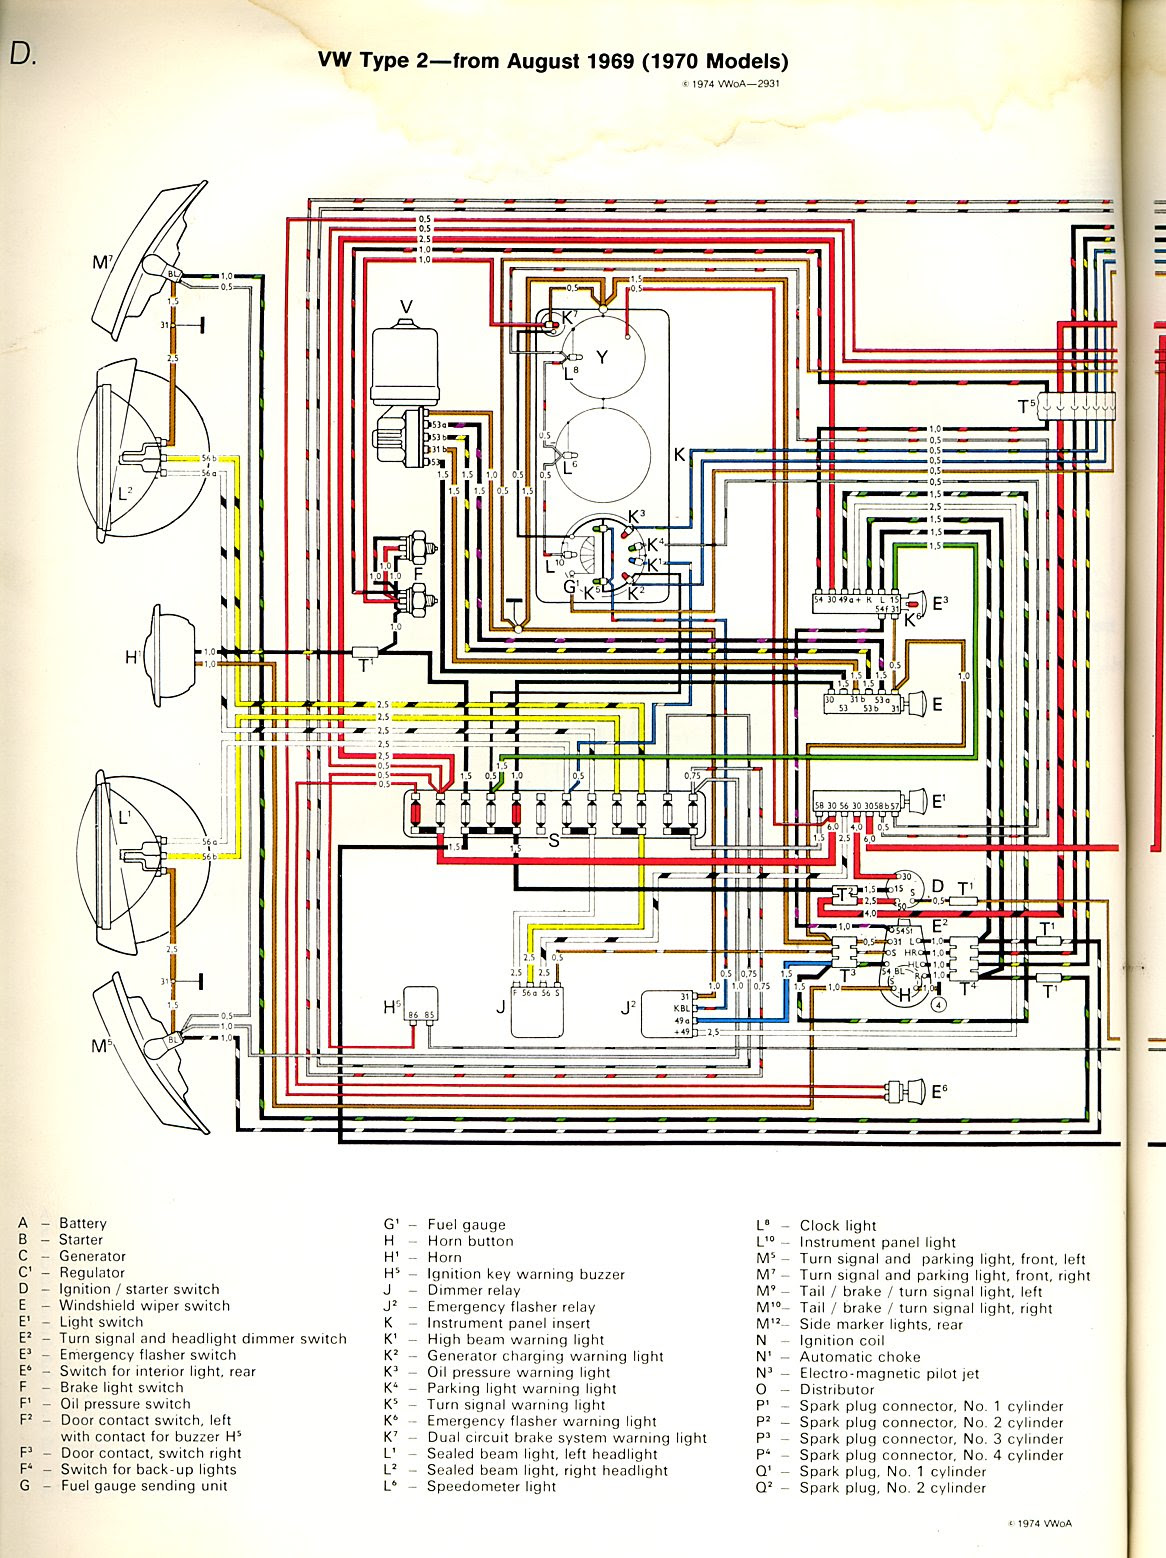 Diagram Thomas Buses Wiring Diagrams Full Version Hd Quality Wiring Diagrams Blogxgoo Mefpie Fr